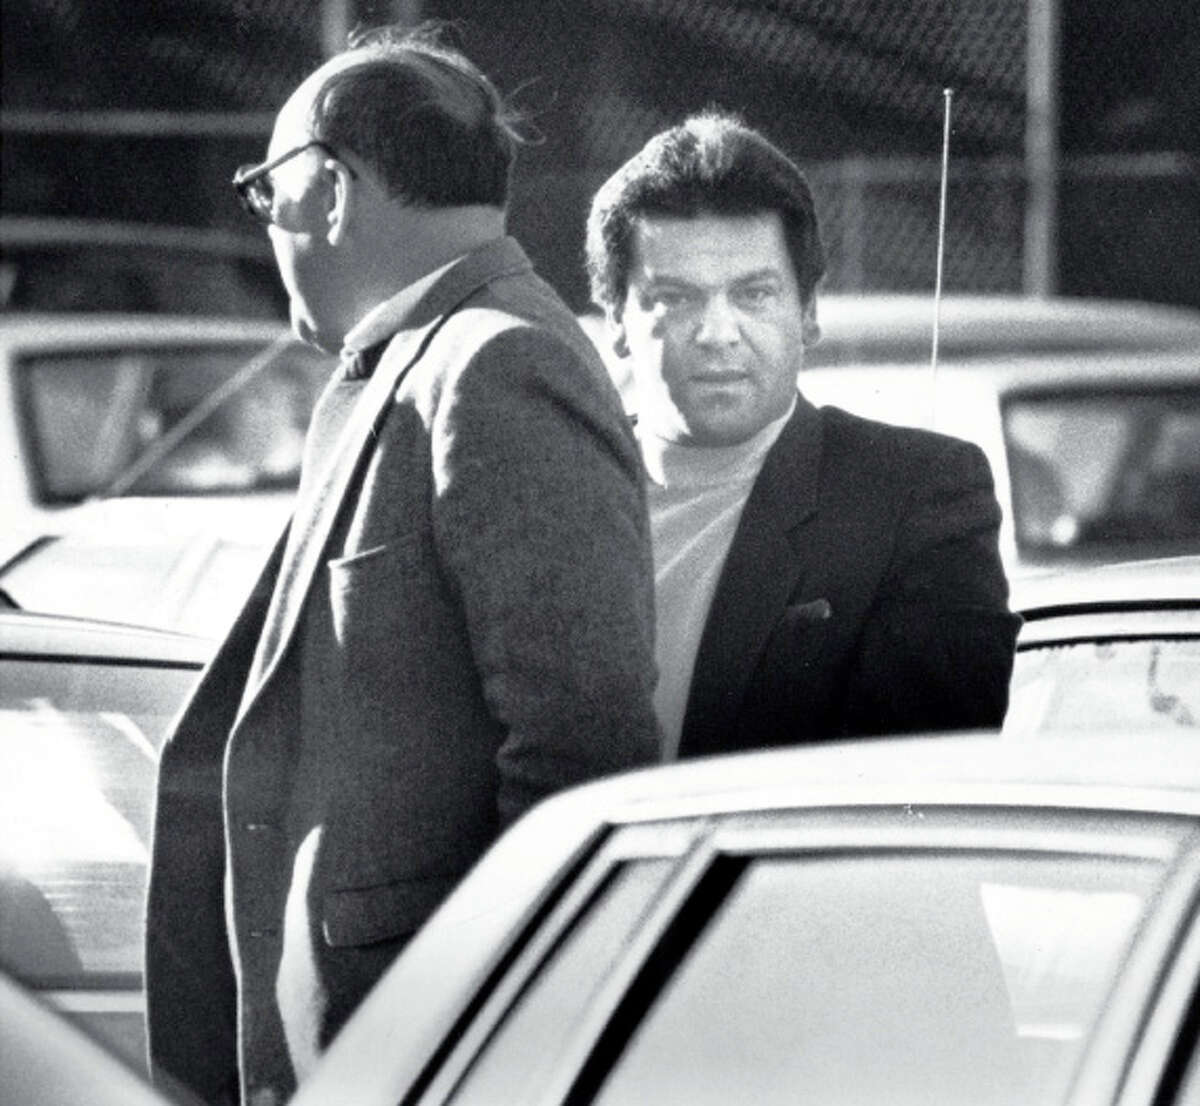 Anthony Megale, right, is taken to U.S. District Court in Bridgeport in December, 1989 for a bond hearing.